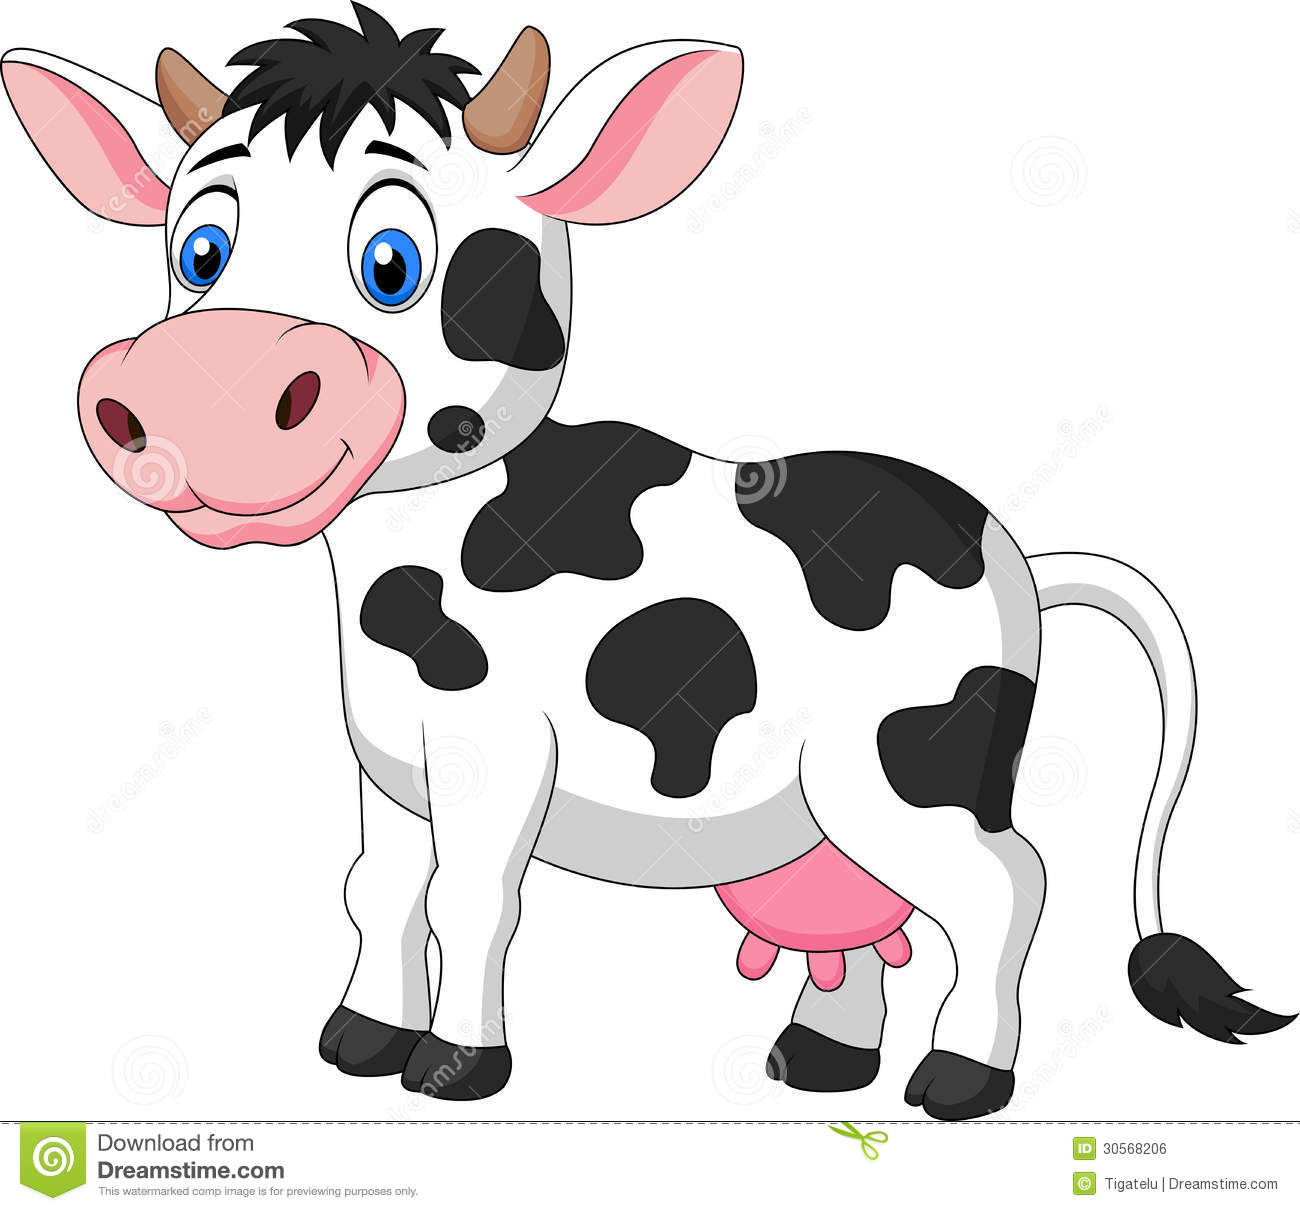 Blue Cow Clipart - Clipart Kid